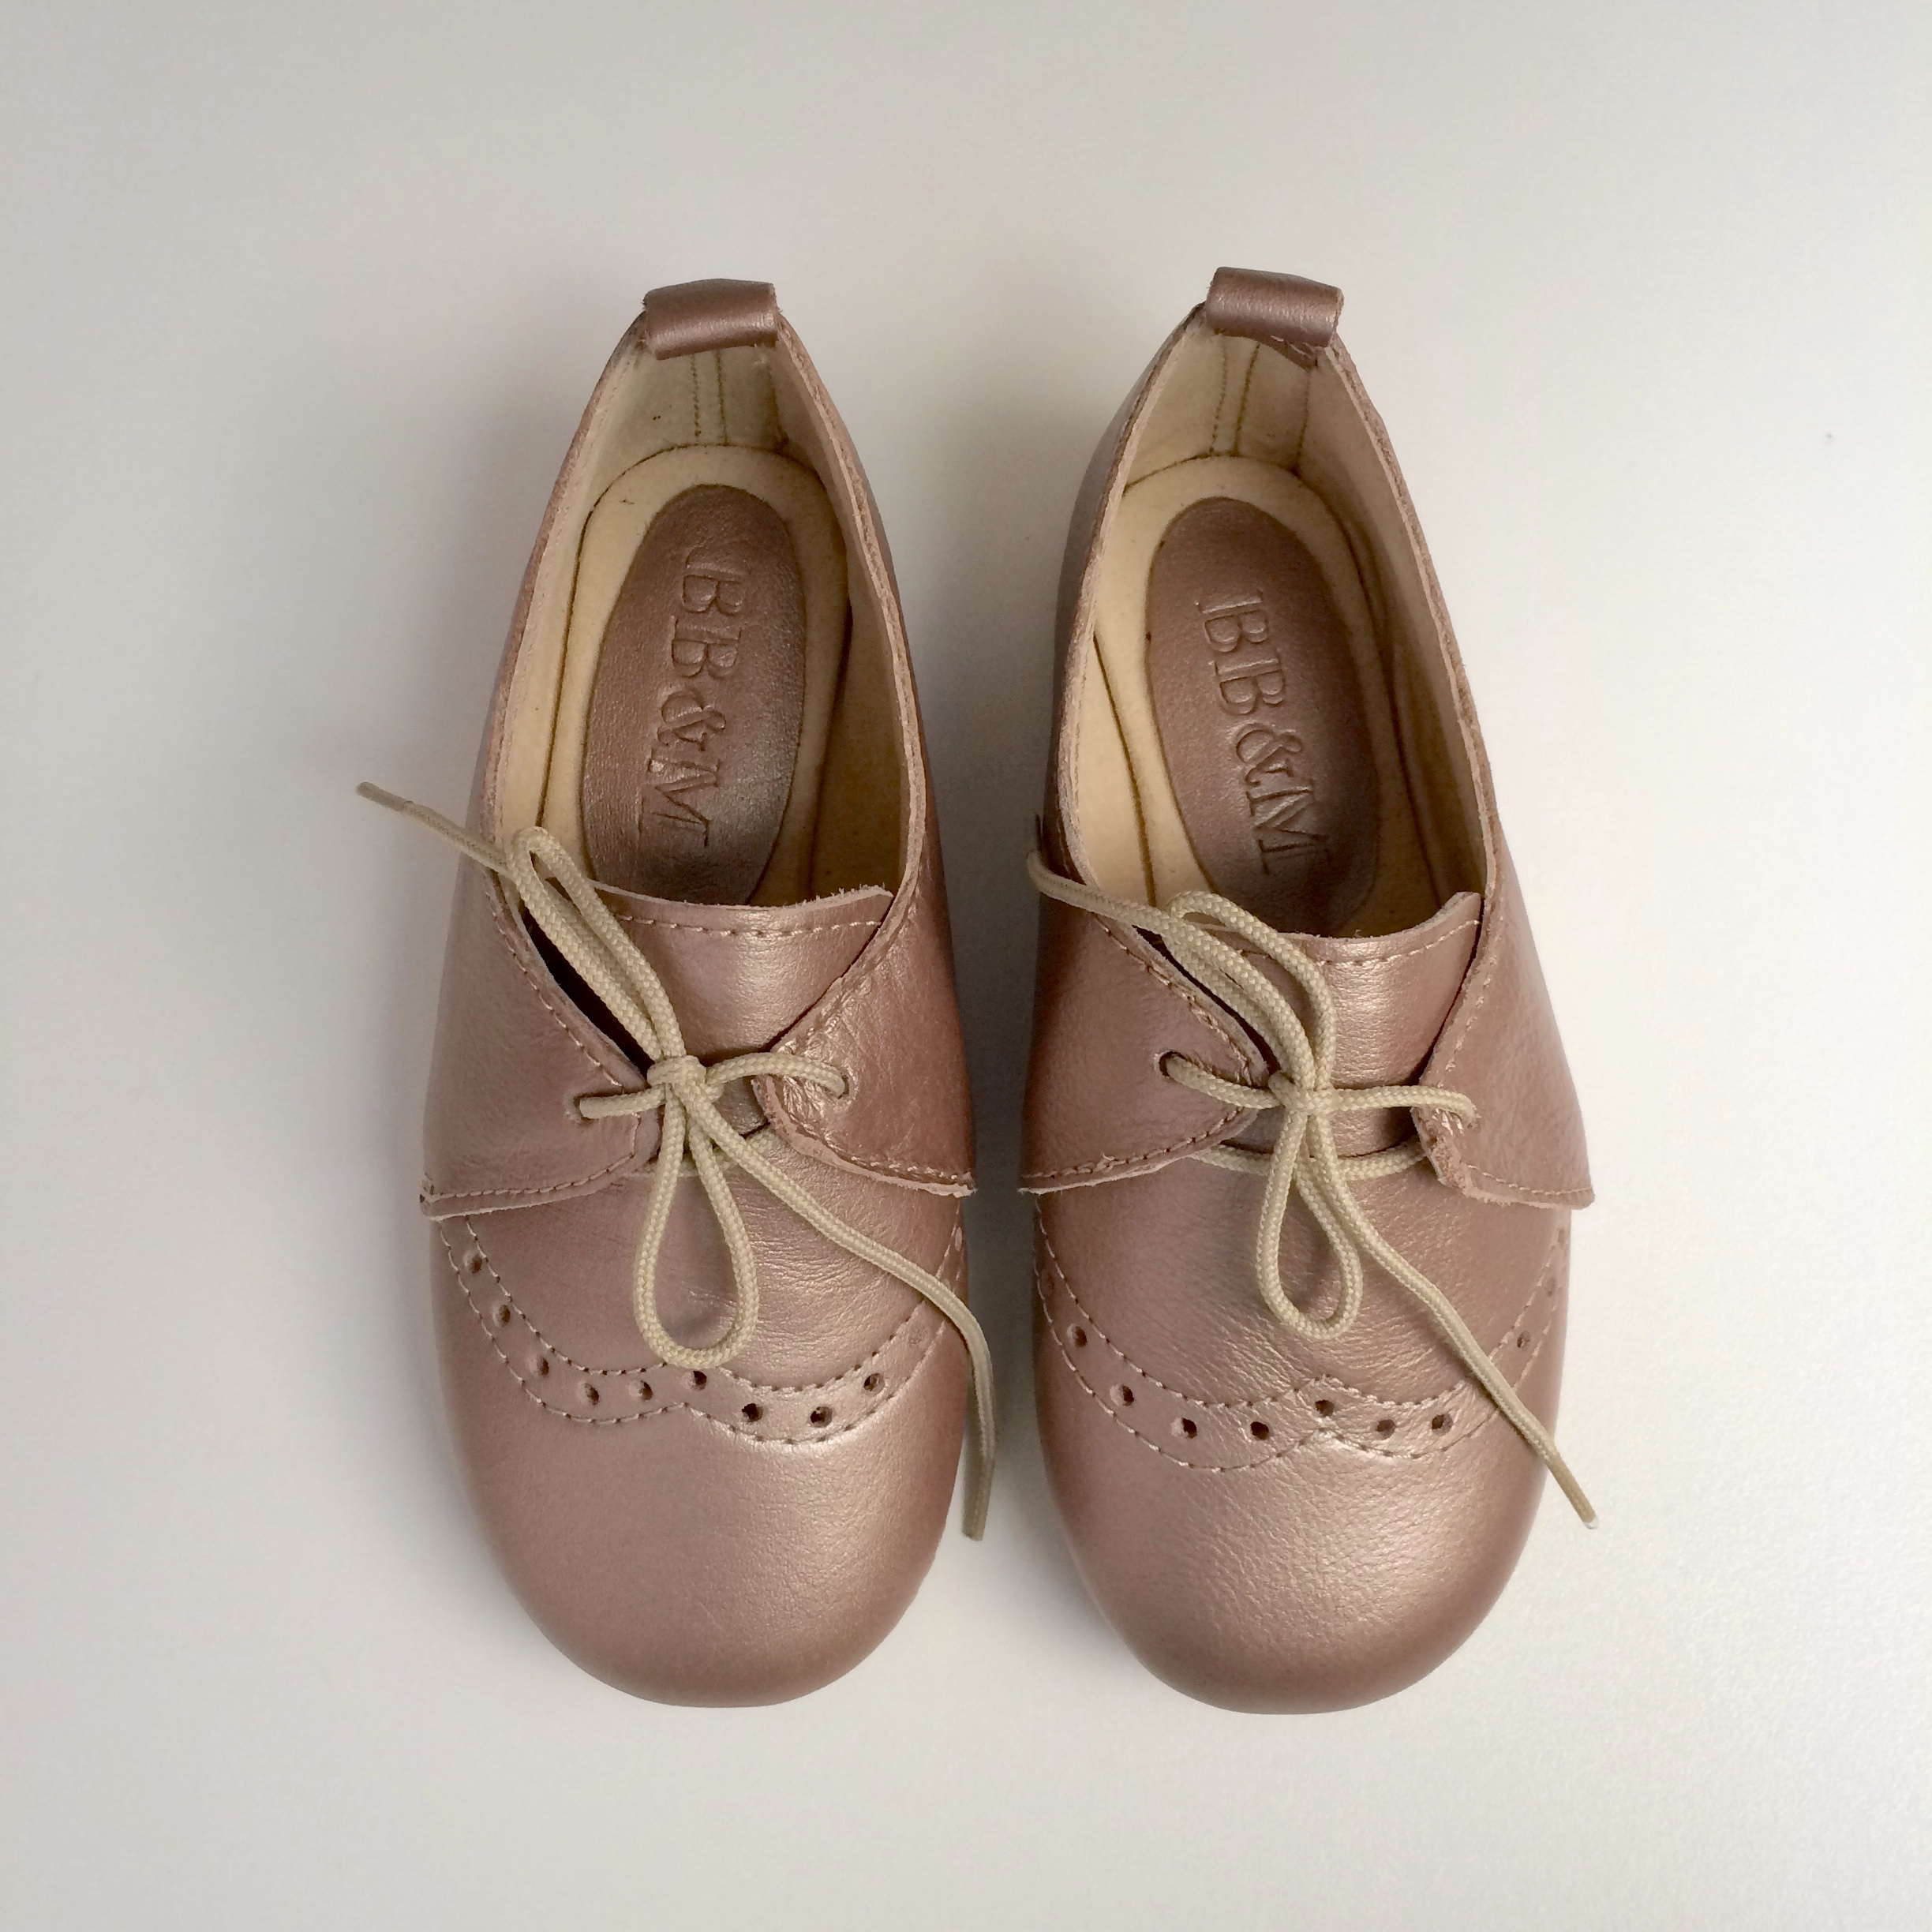 Girls Rose Gold Lace-ups with broguing - GL1